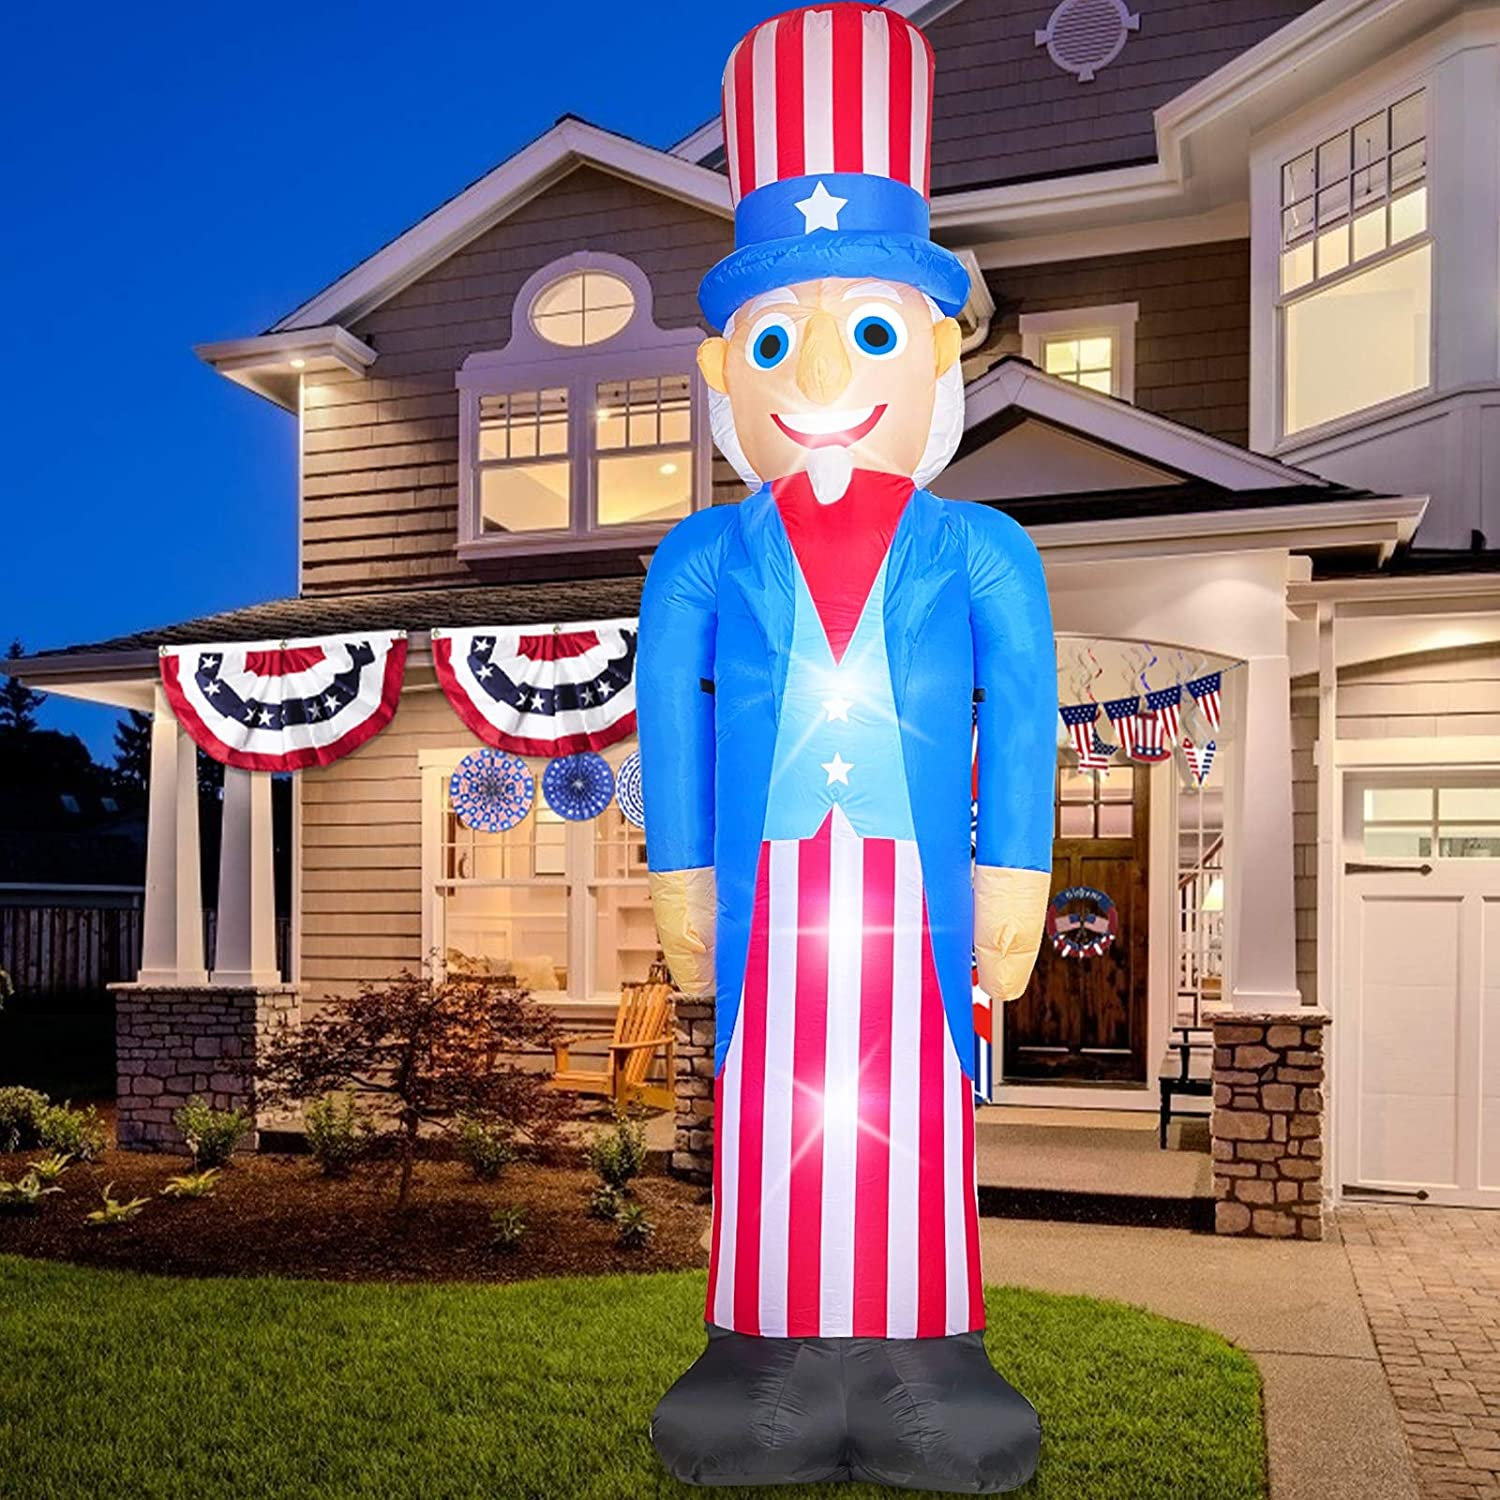 TURNMEON 8 Foot Giant Inflatables Uncle Sam 4th of July Decorations Outdoor Blow up Red White Blue Uncle Sam Light up with Tether Stakes Independence Day Memorial Day Patriotic Decor Home Yard Garden